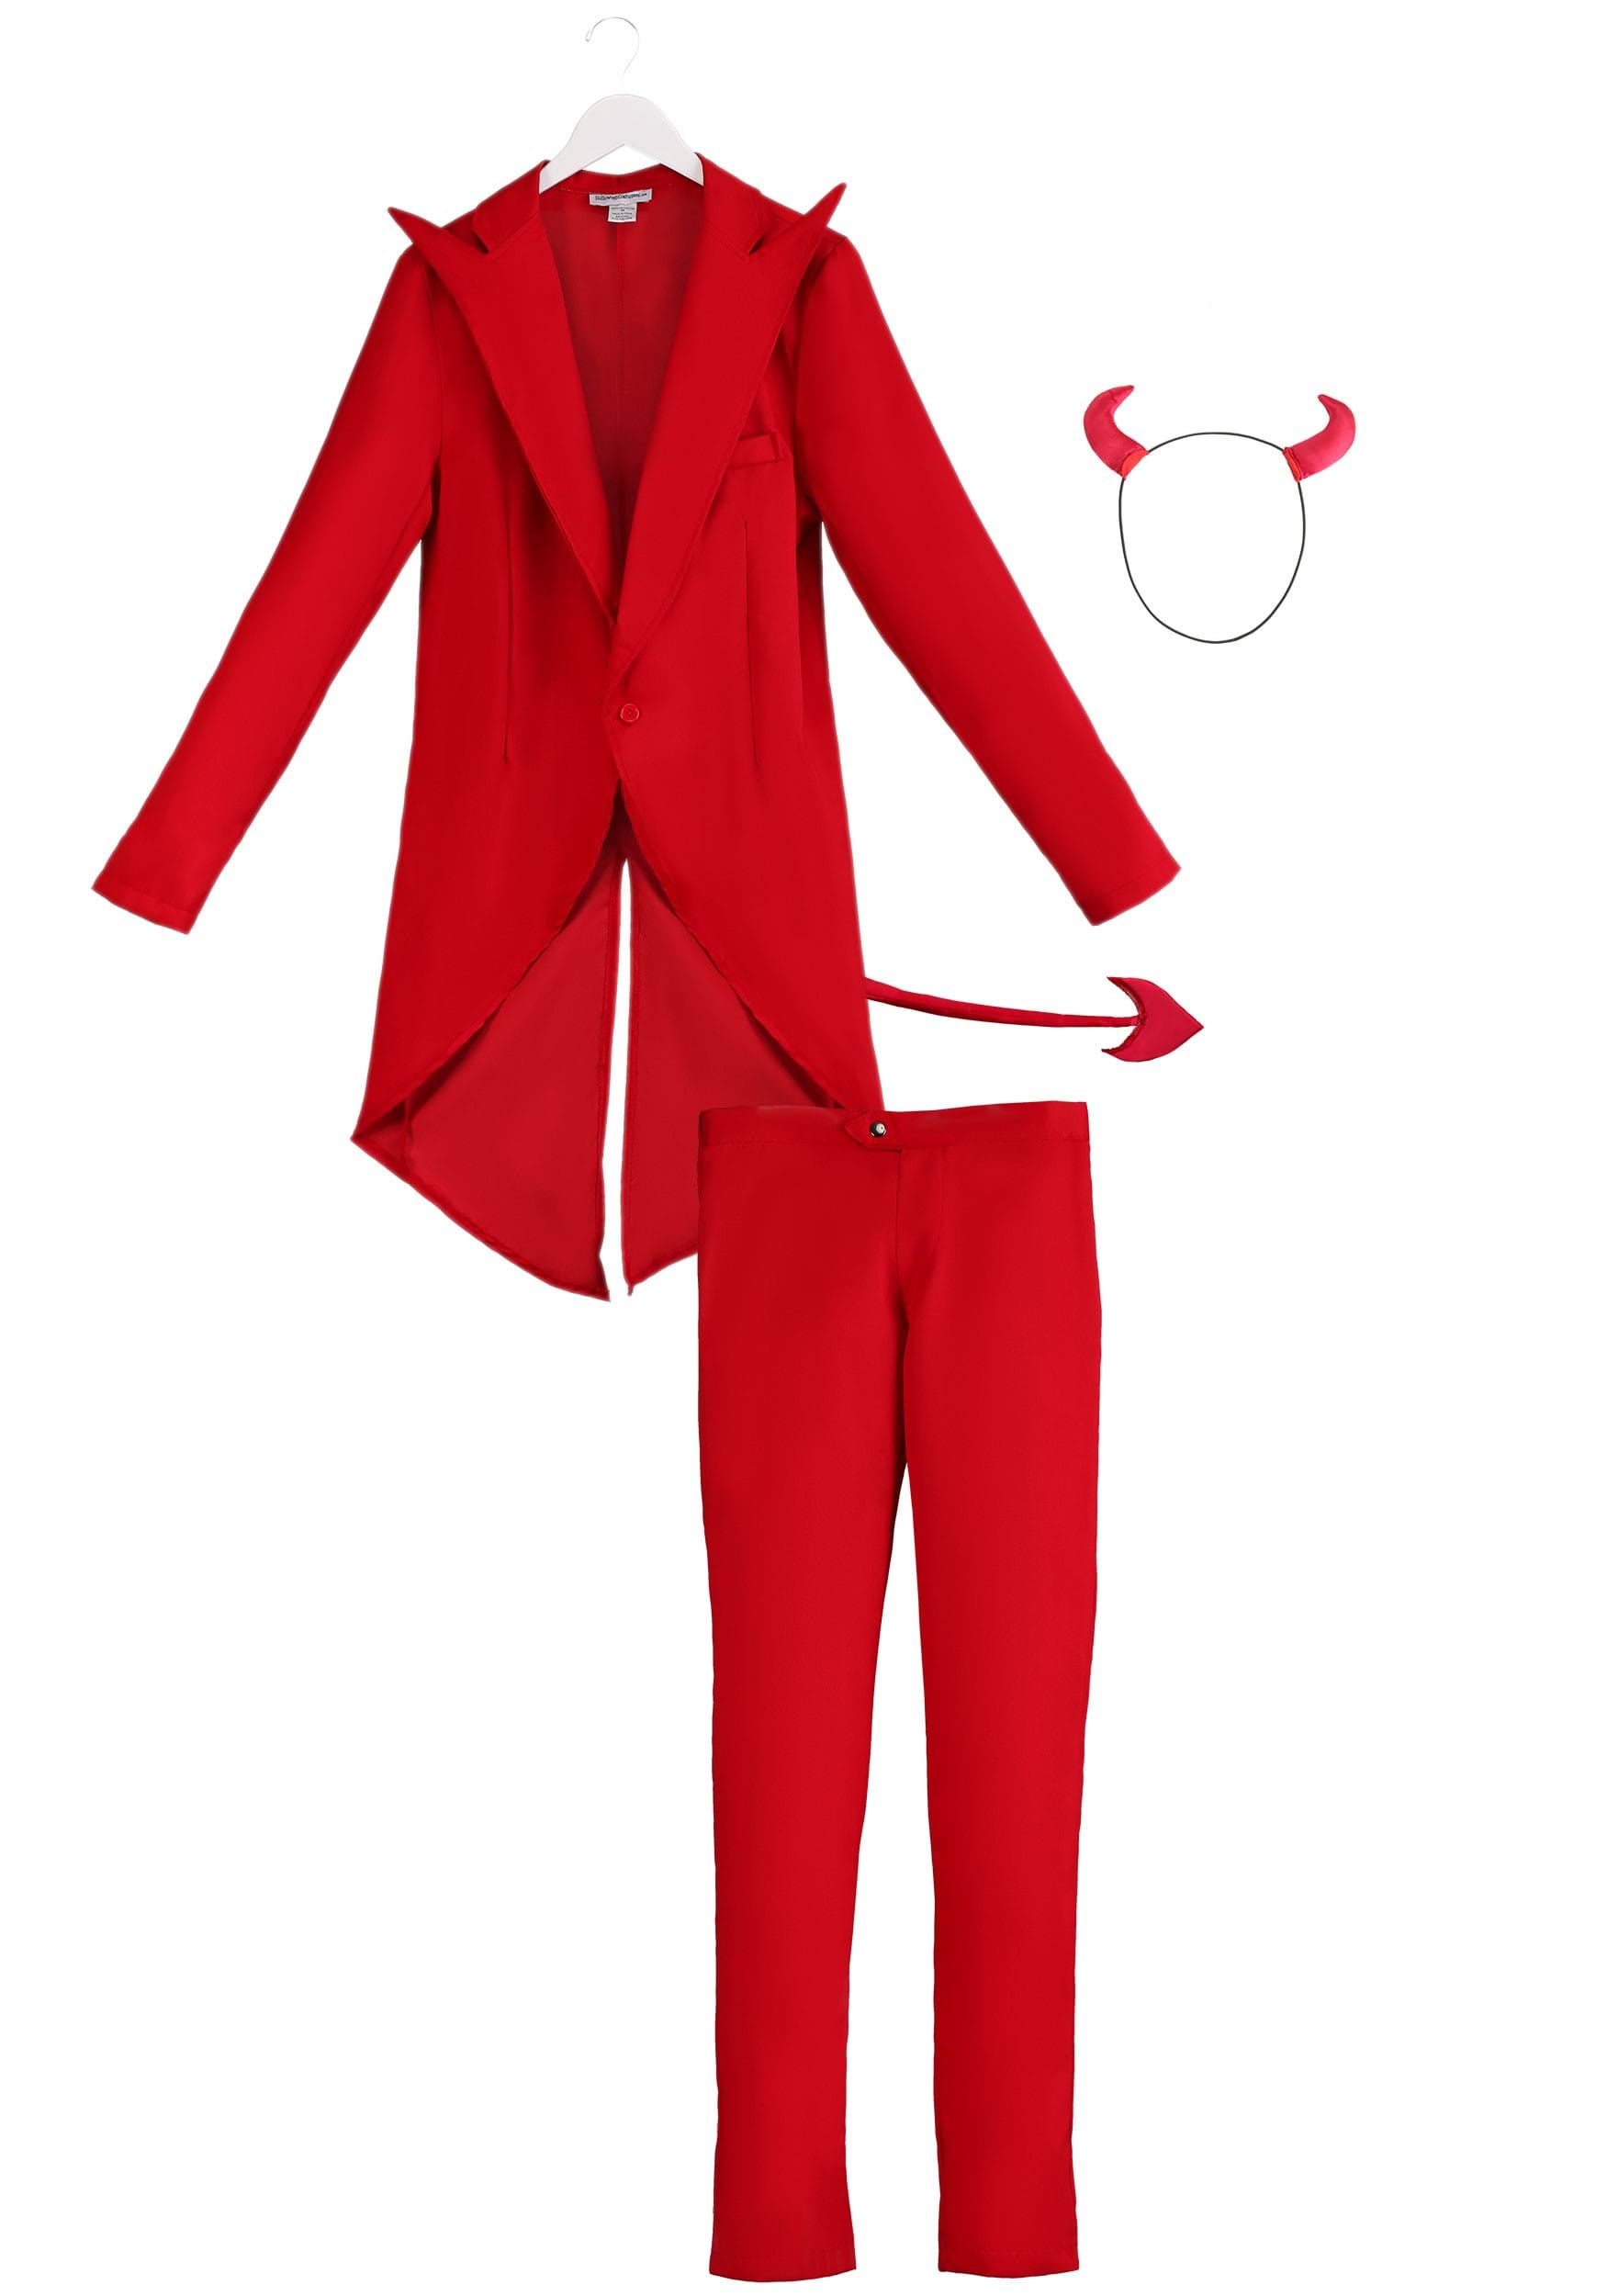 [Image: adult-red-suit-devil-costume.jpg]